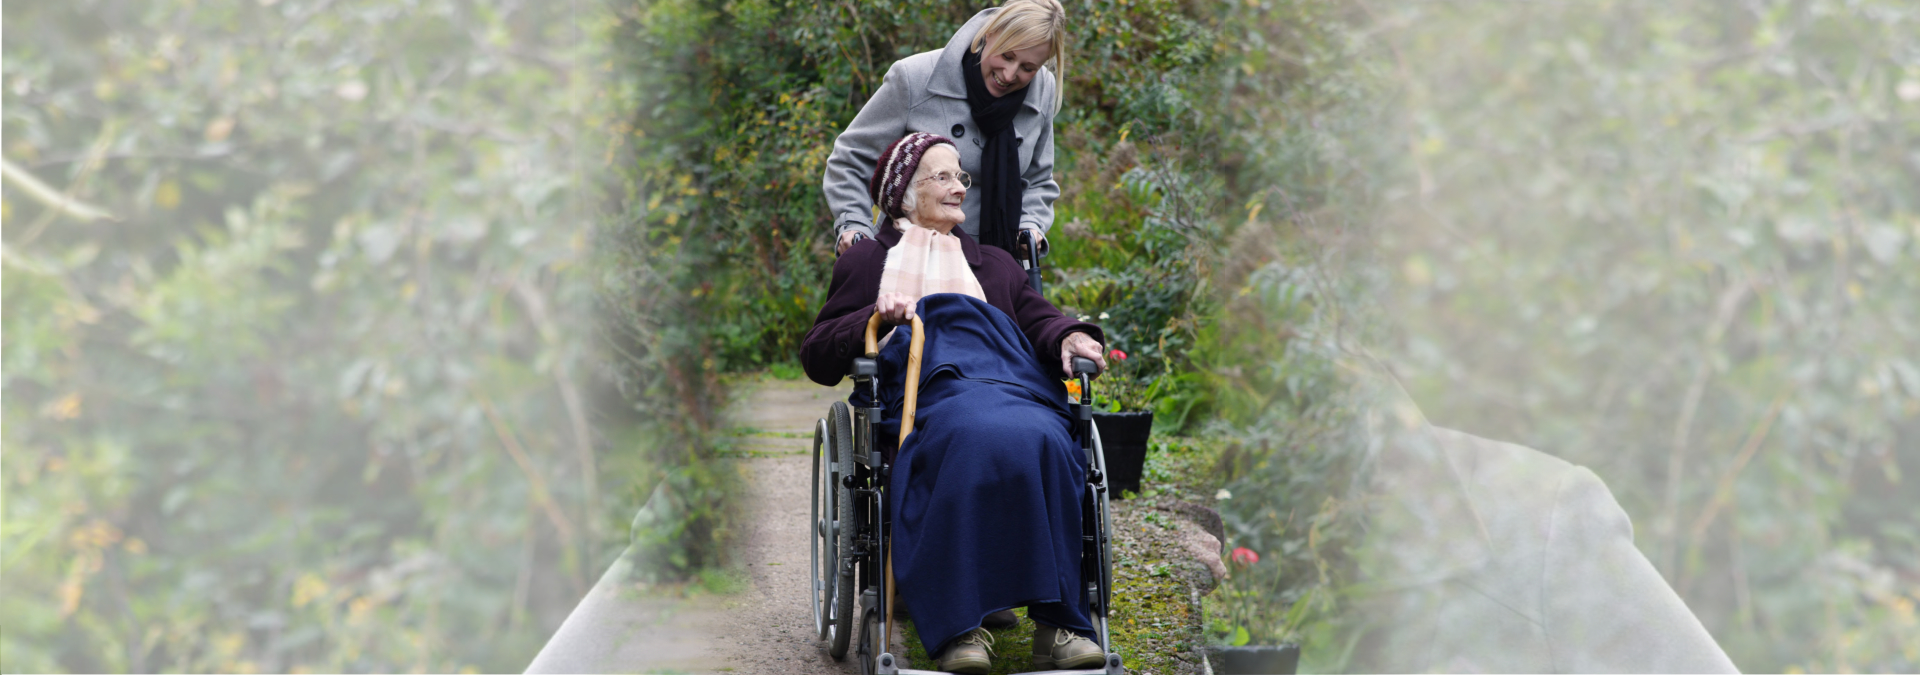 Elder woman with caregiver